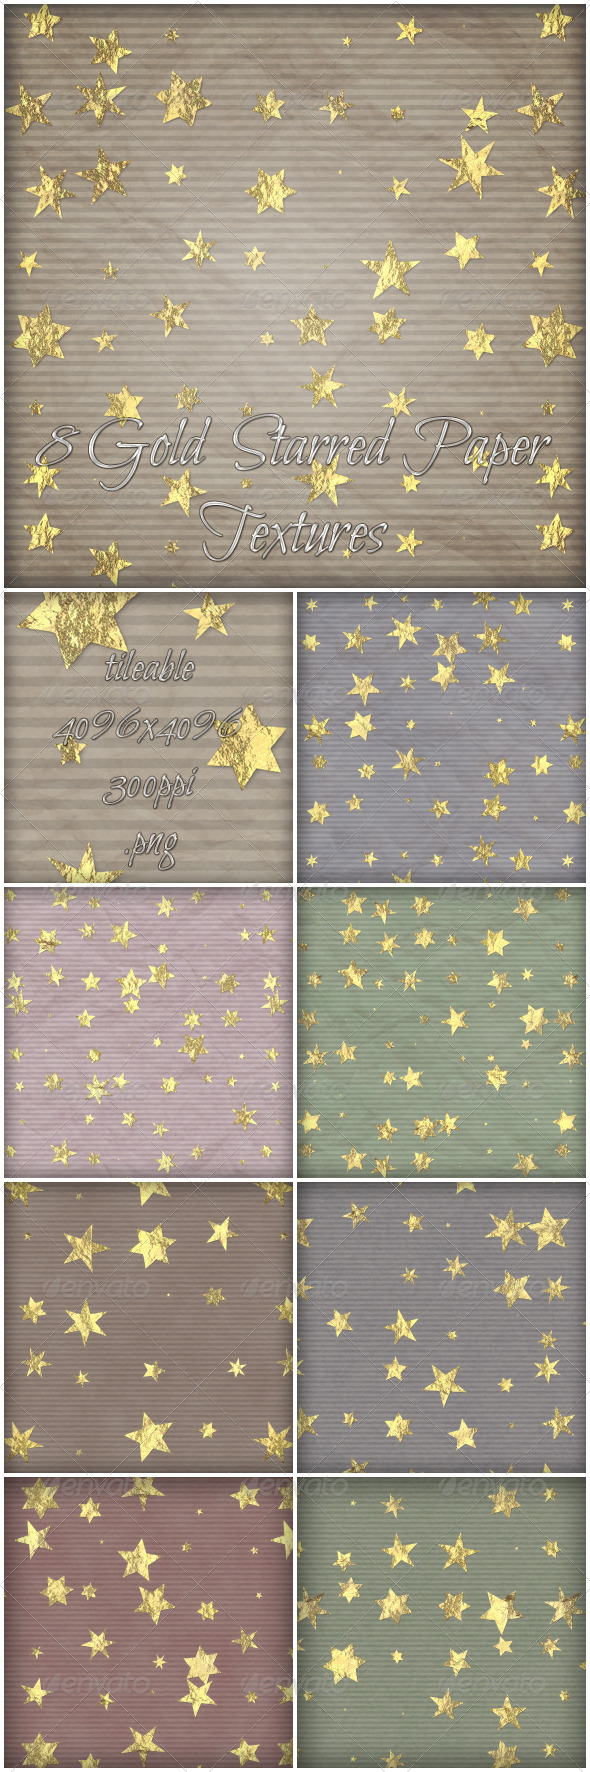 GraphicRiver 8 Gold starred Paper Textures 6341706